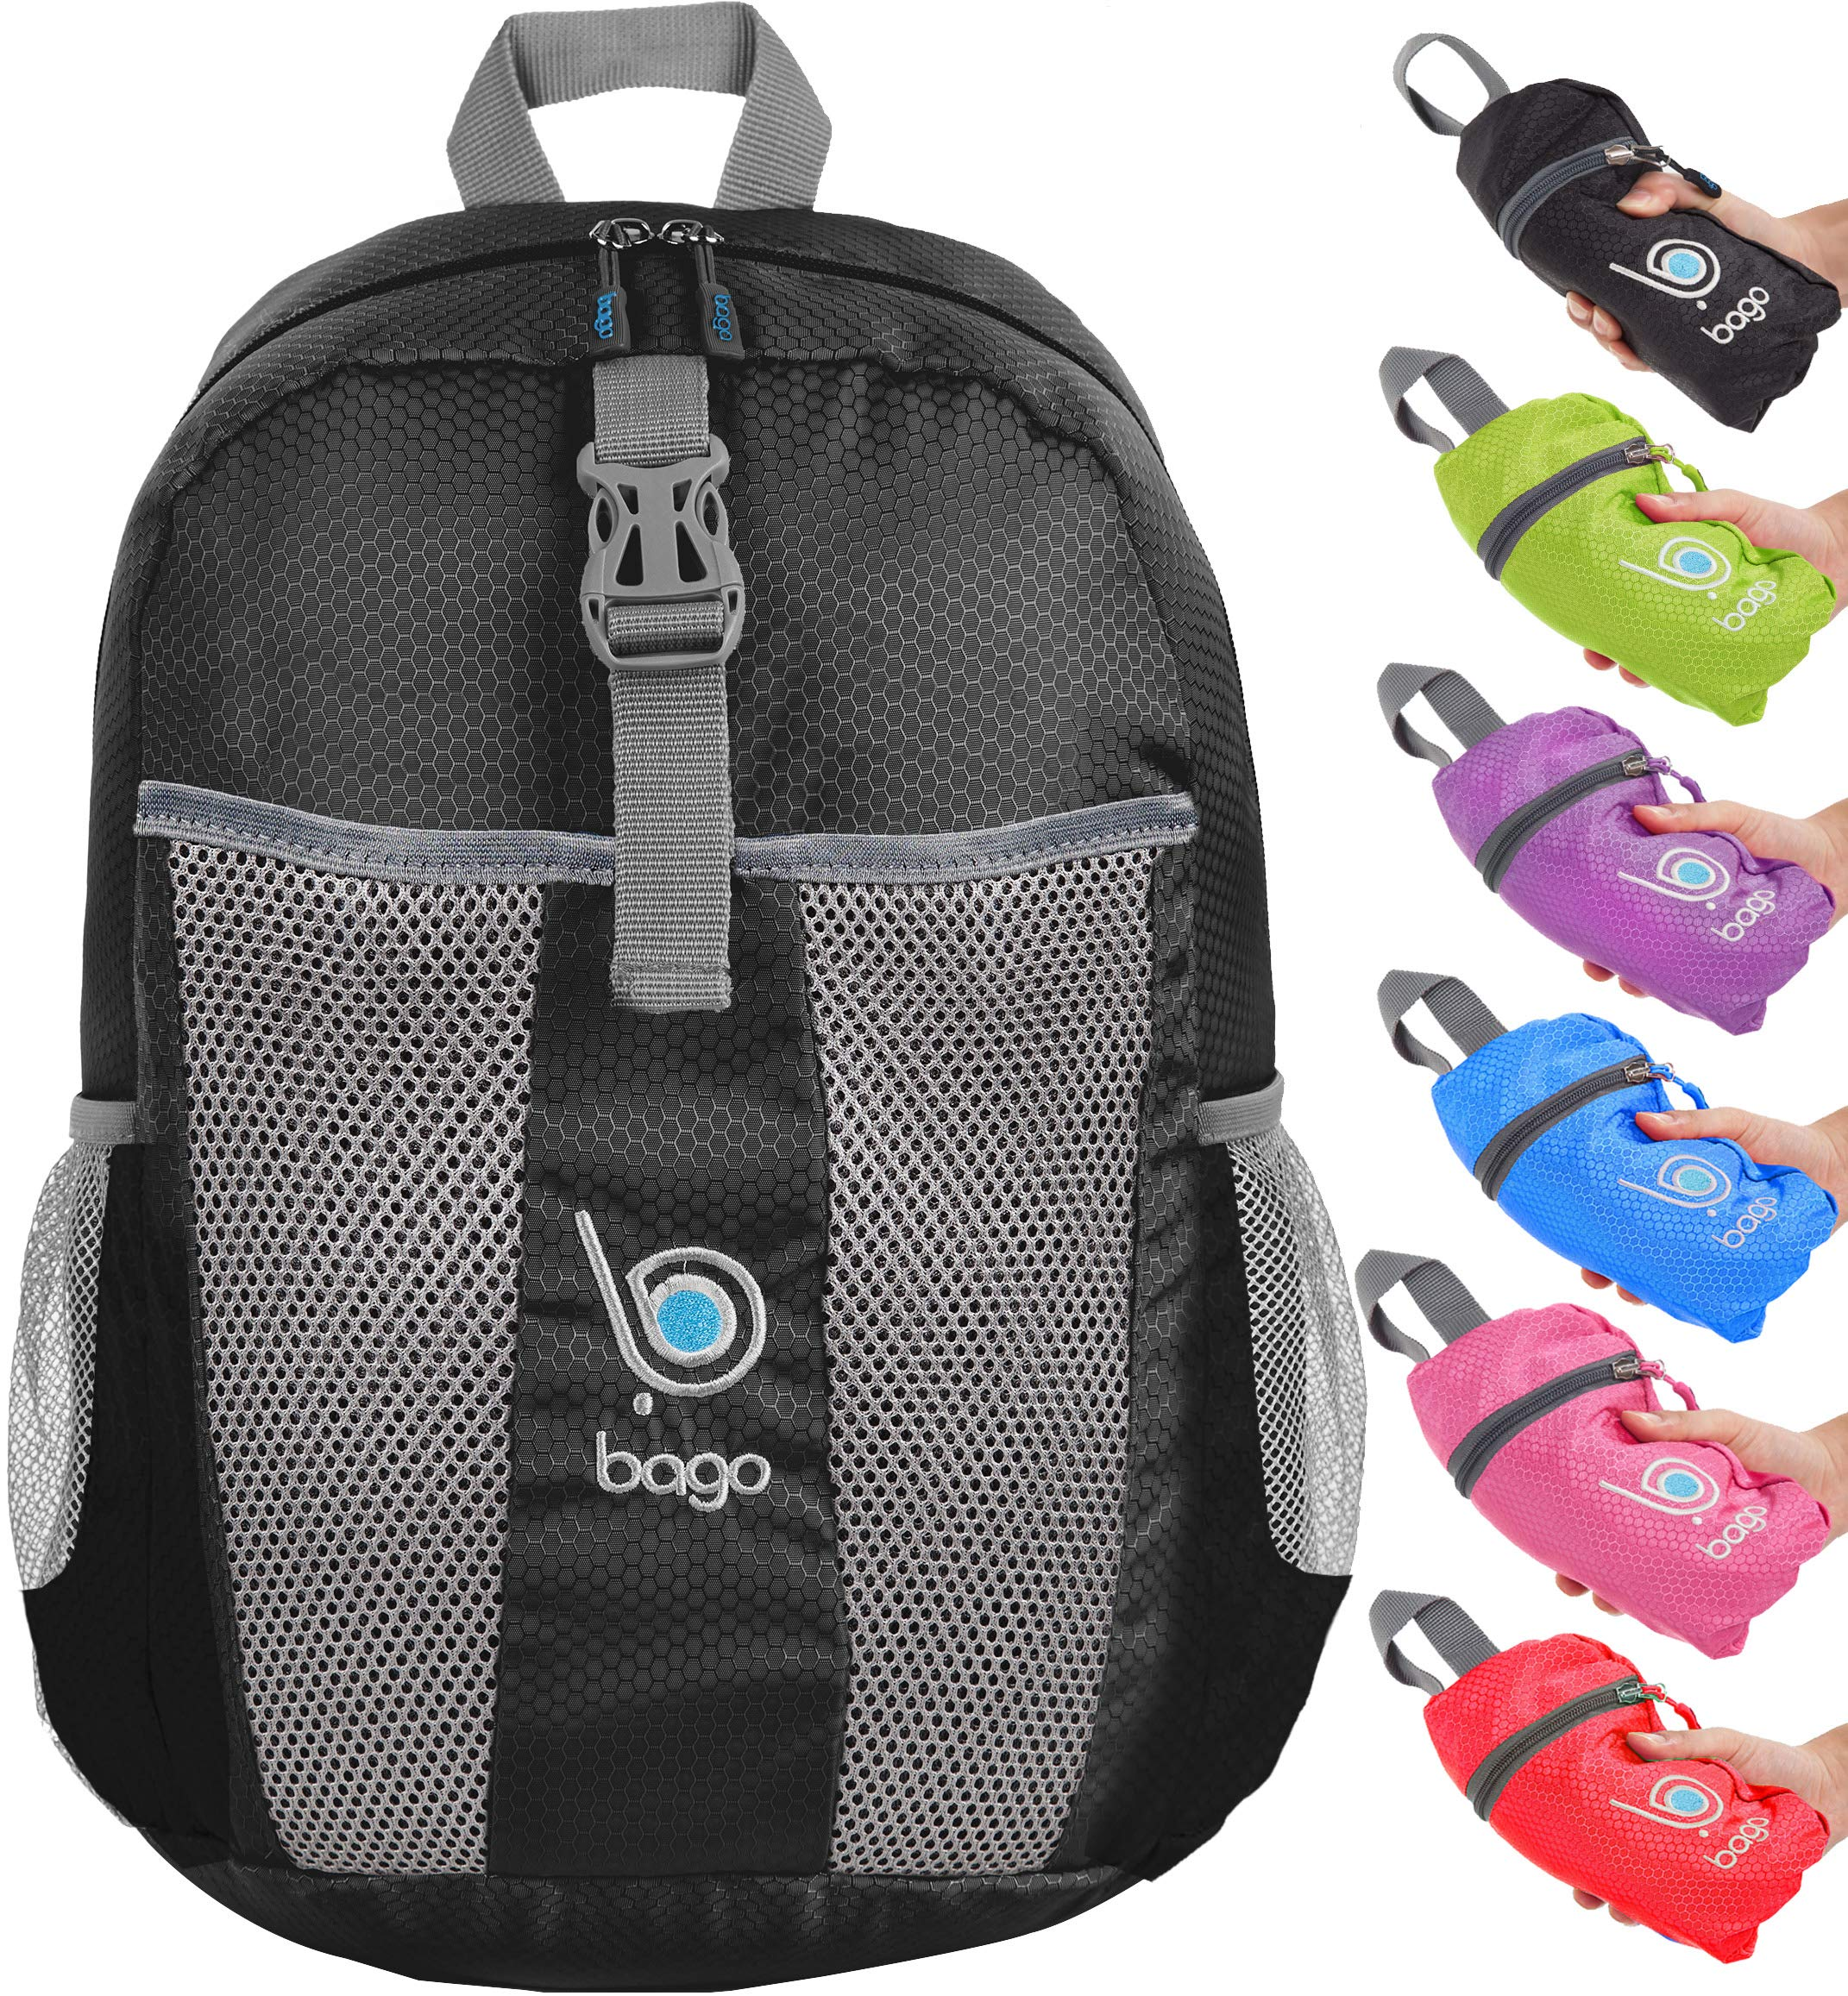 Bago Foldable Rucksack for Women and Men. Lightweight Water Resistant  Packable Backpack, Great Unisex 01cd6ccb01